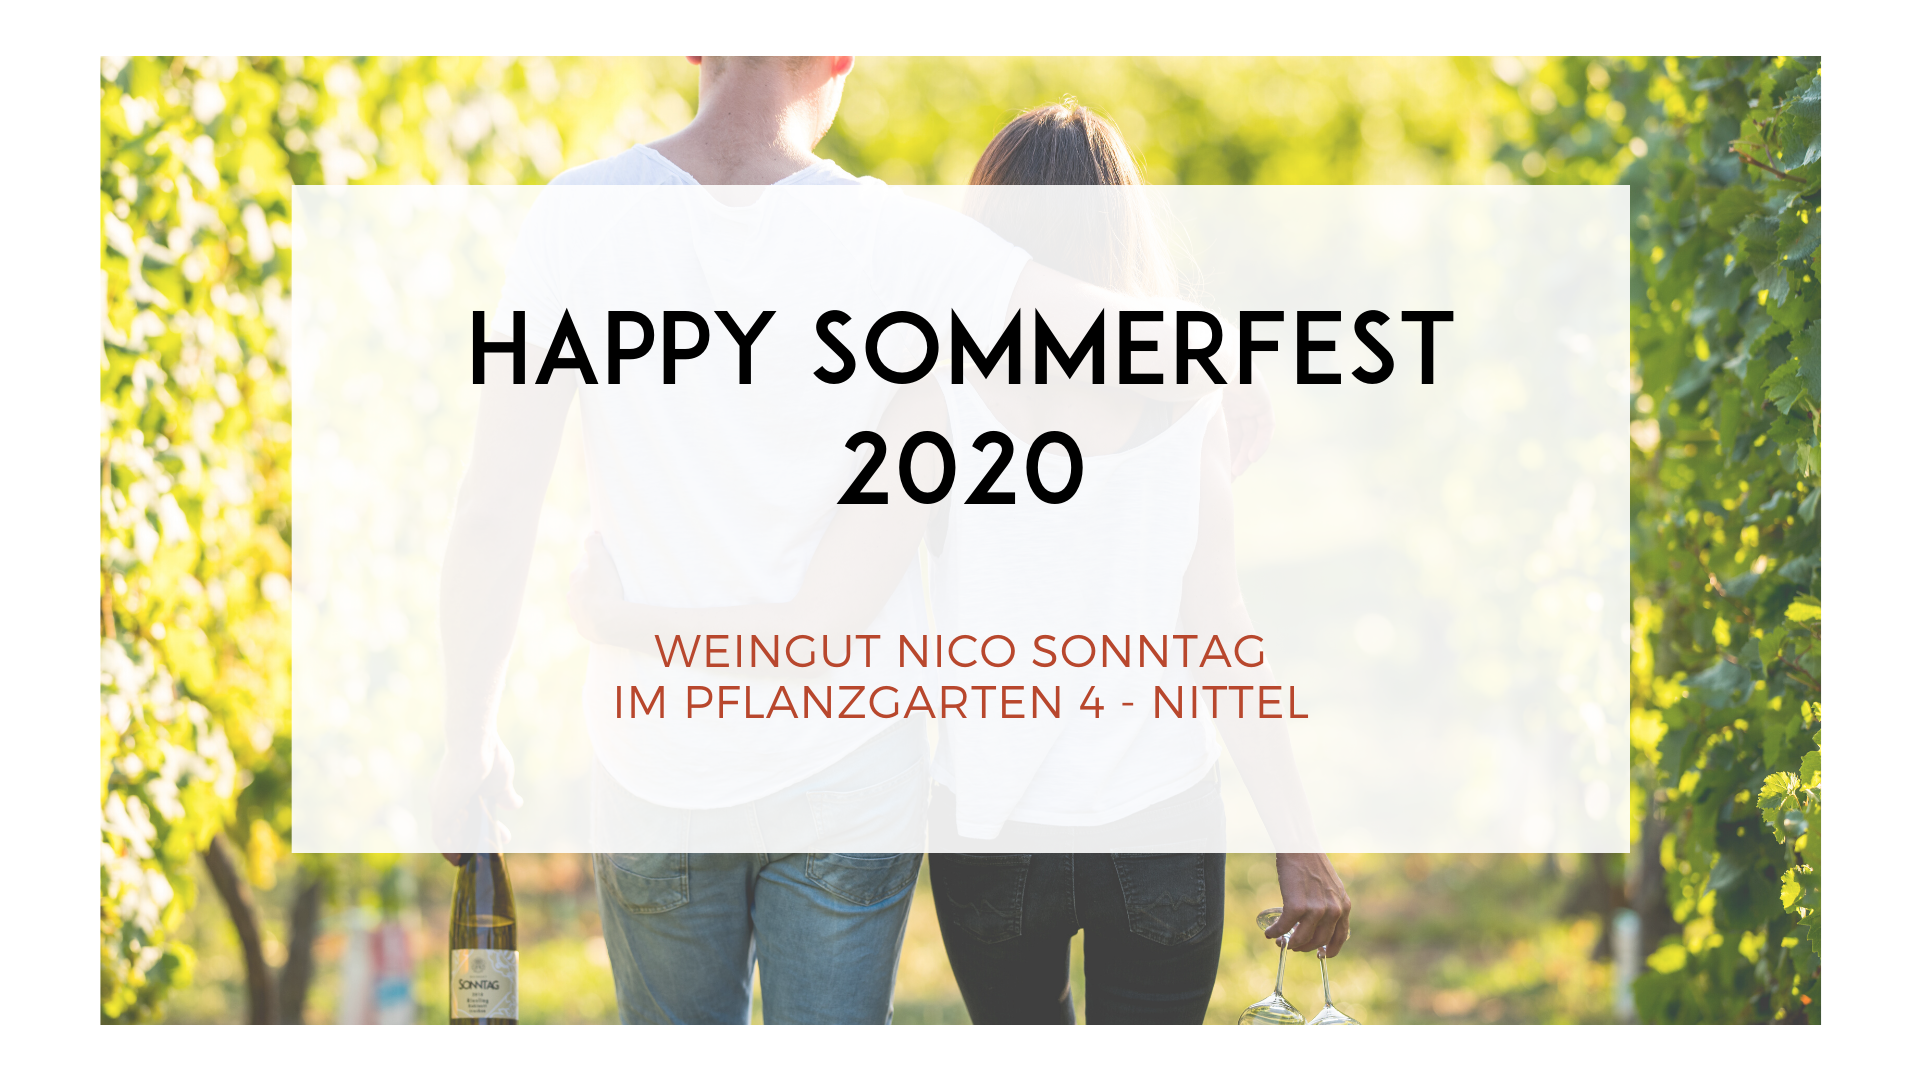 HAPPY SOMMERFEST 2020